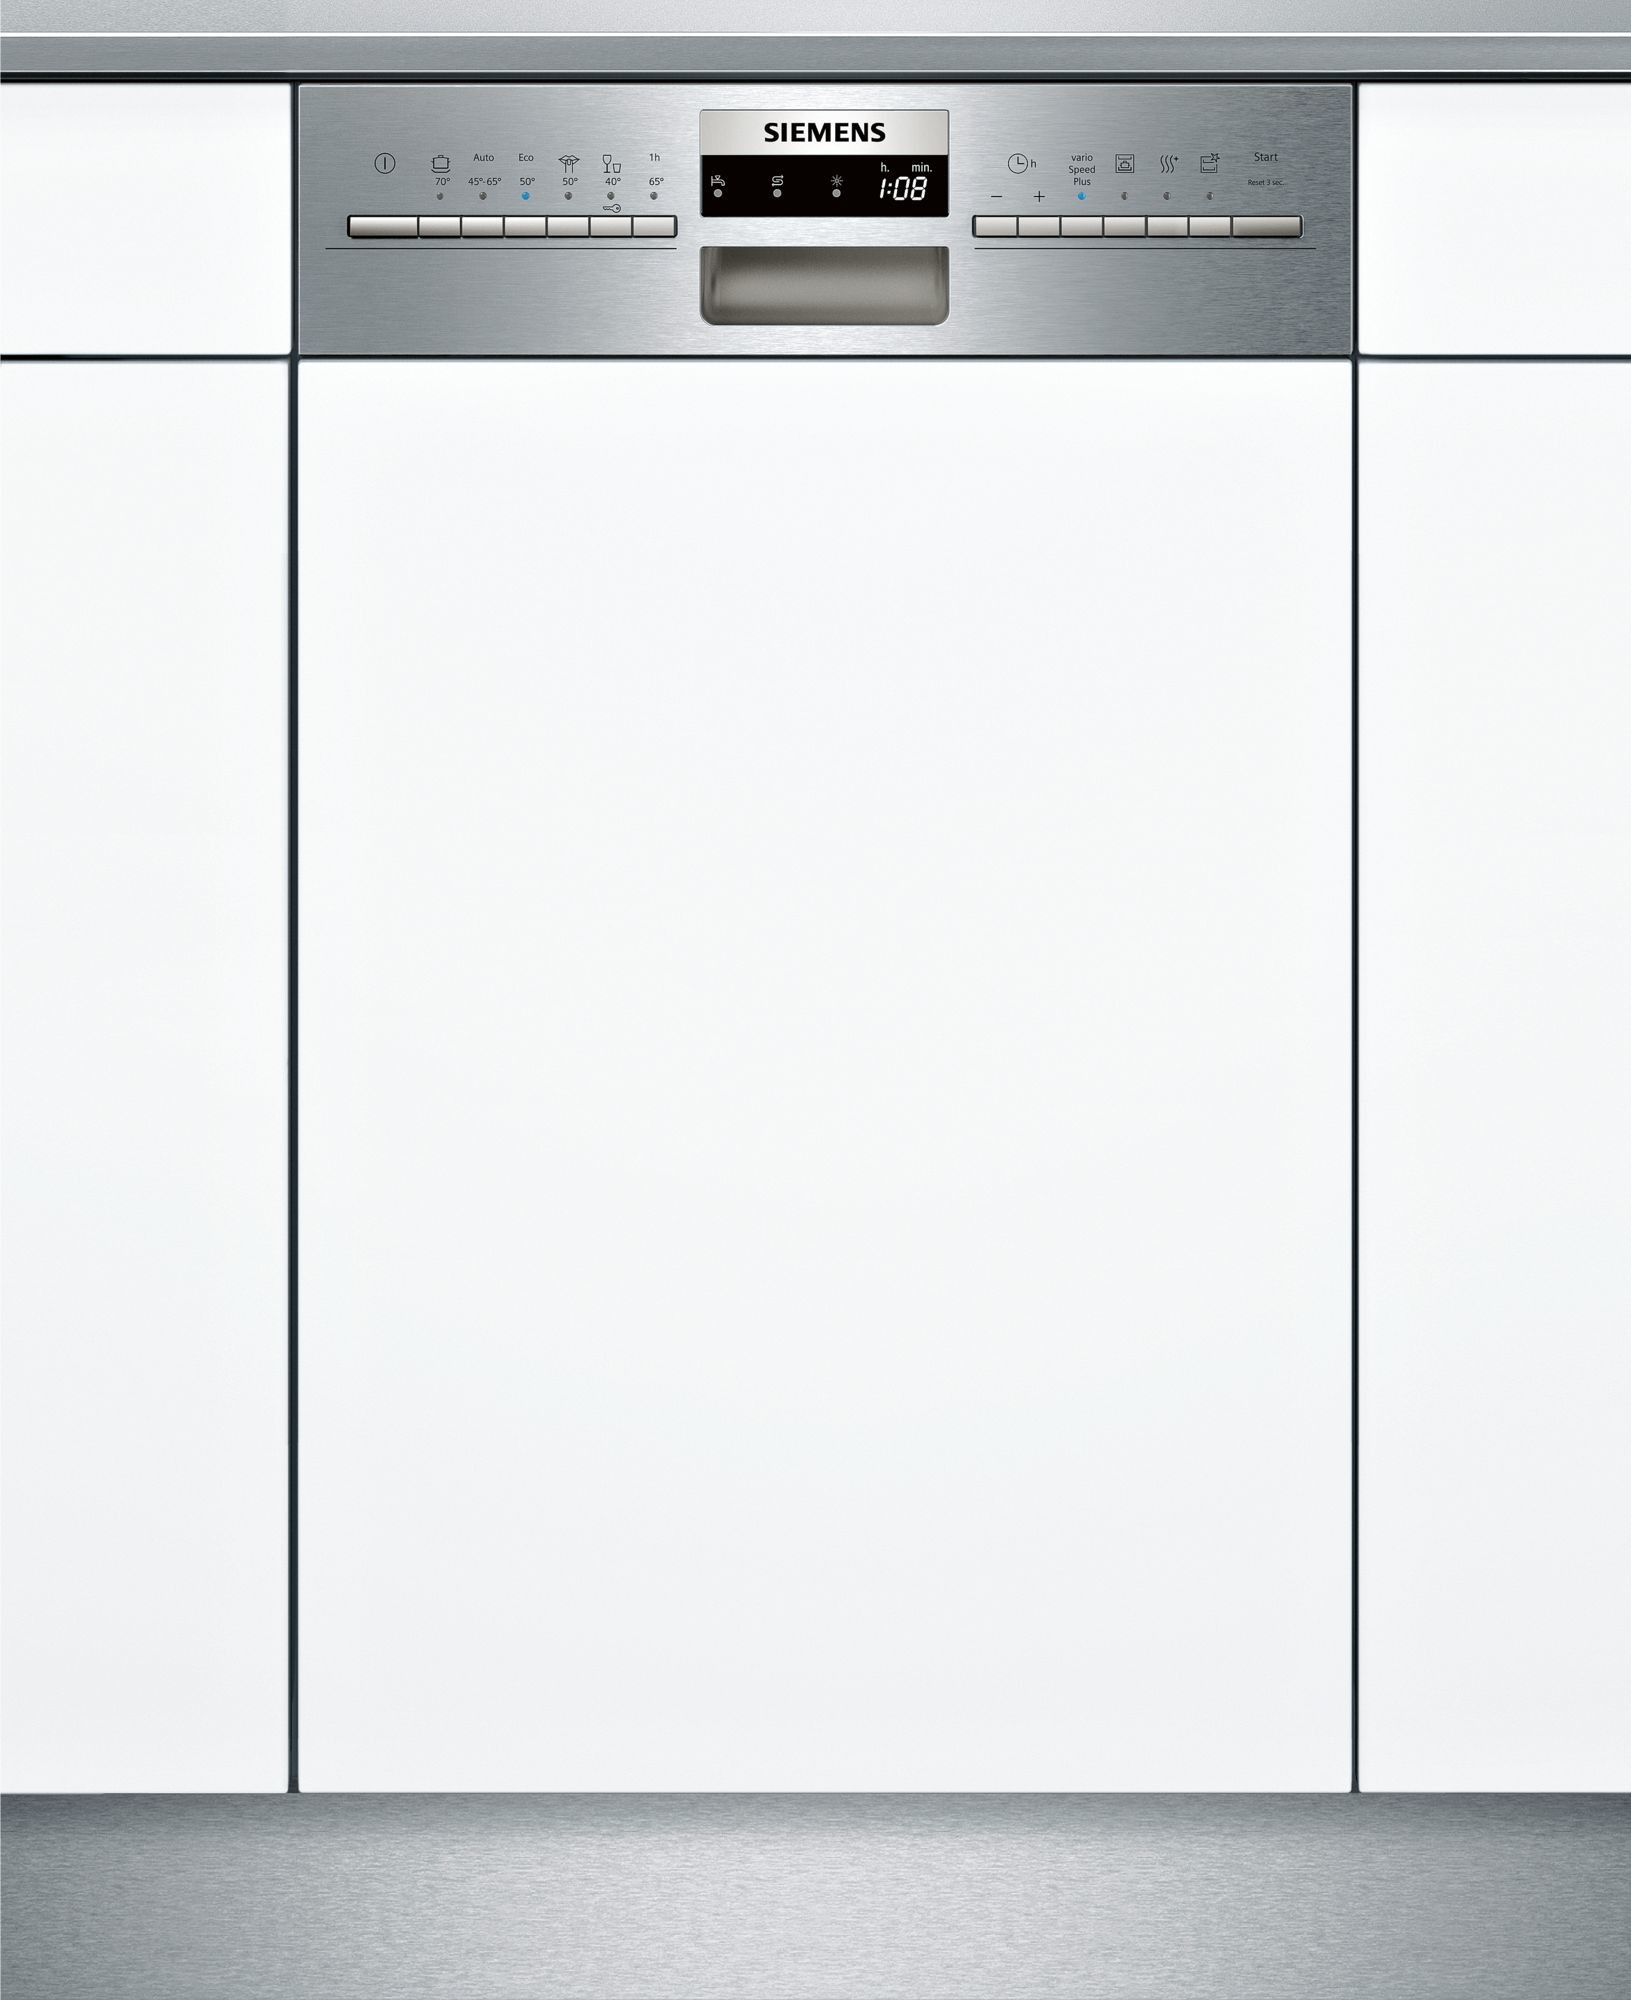 Siemens Iq300 Sr536s01me Dishwasher Semi Built In 10 Place Settings A 855 00 Siemens Https Bestbuycyprus Com Dis Cool Things To Buy Dishwasher Siemens